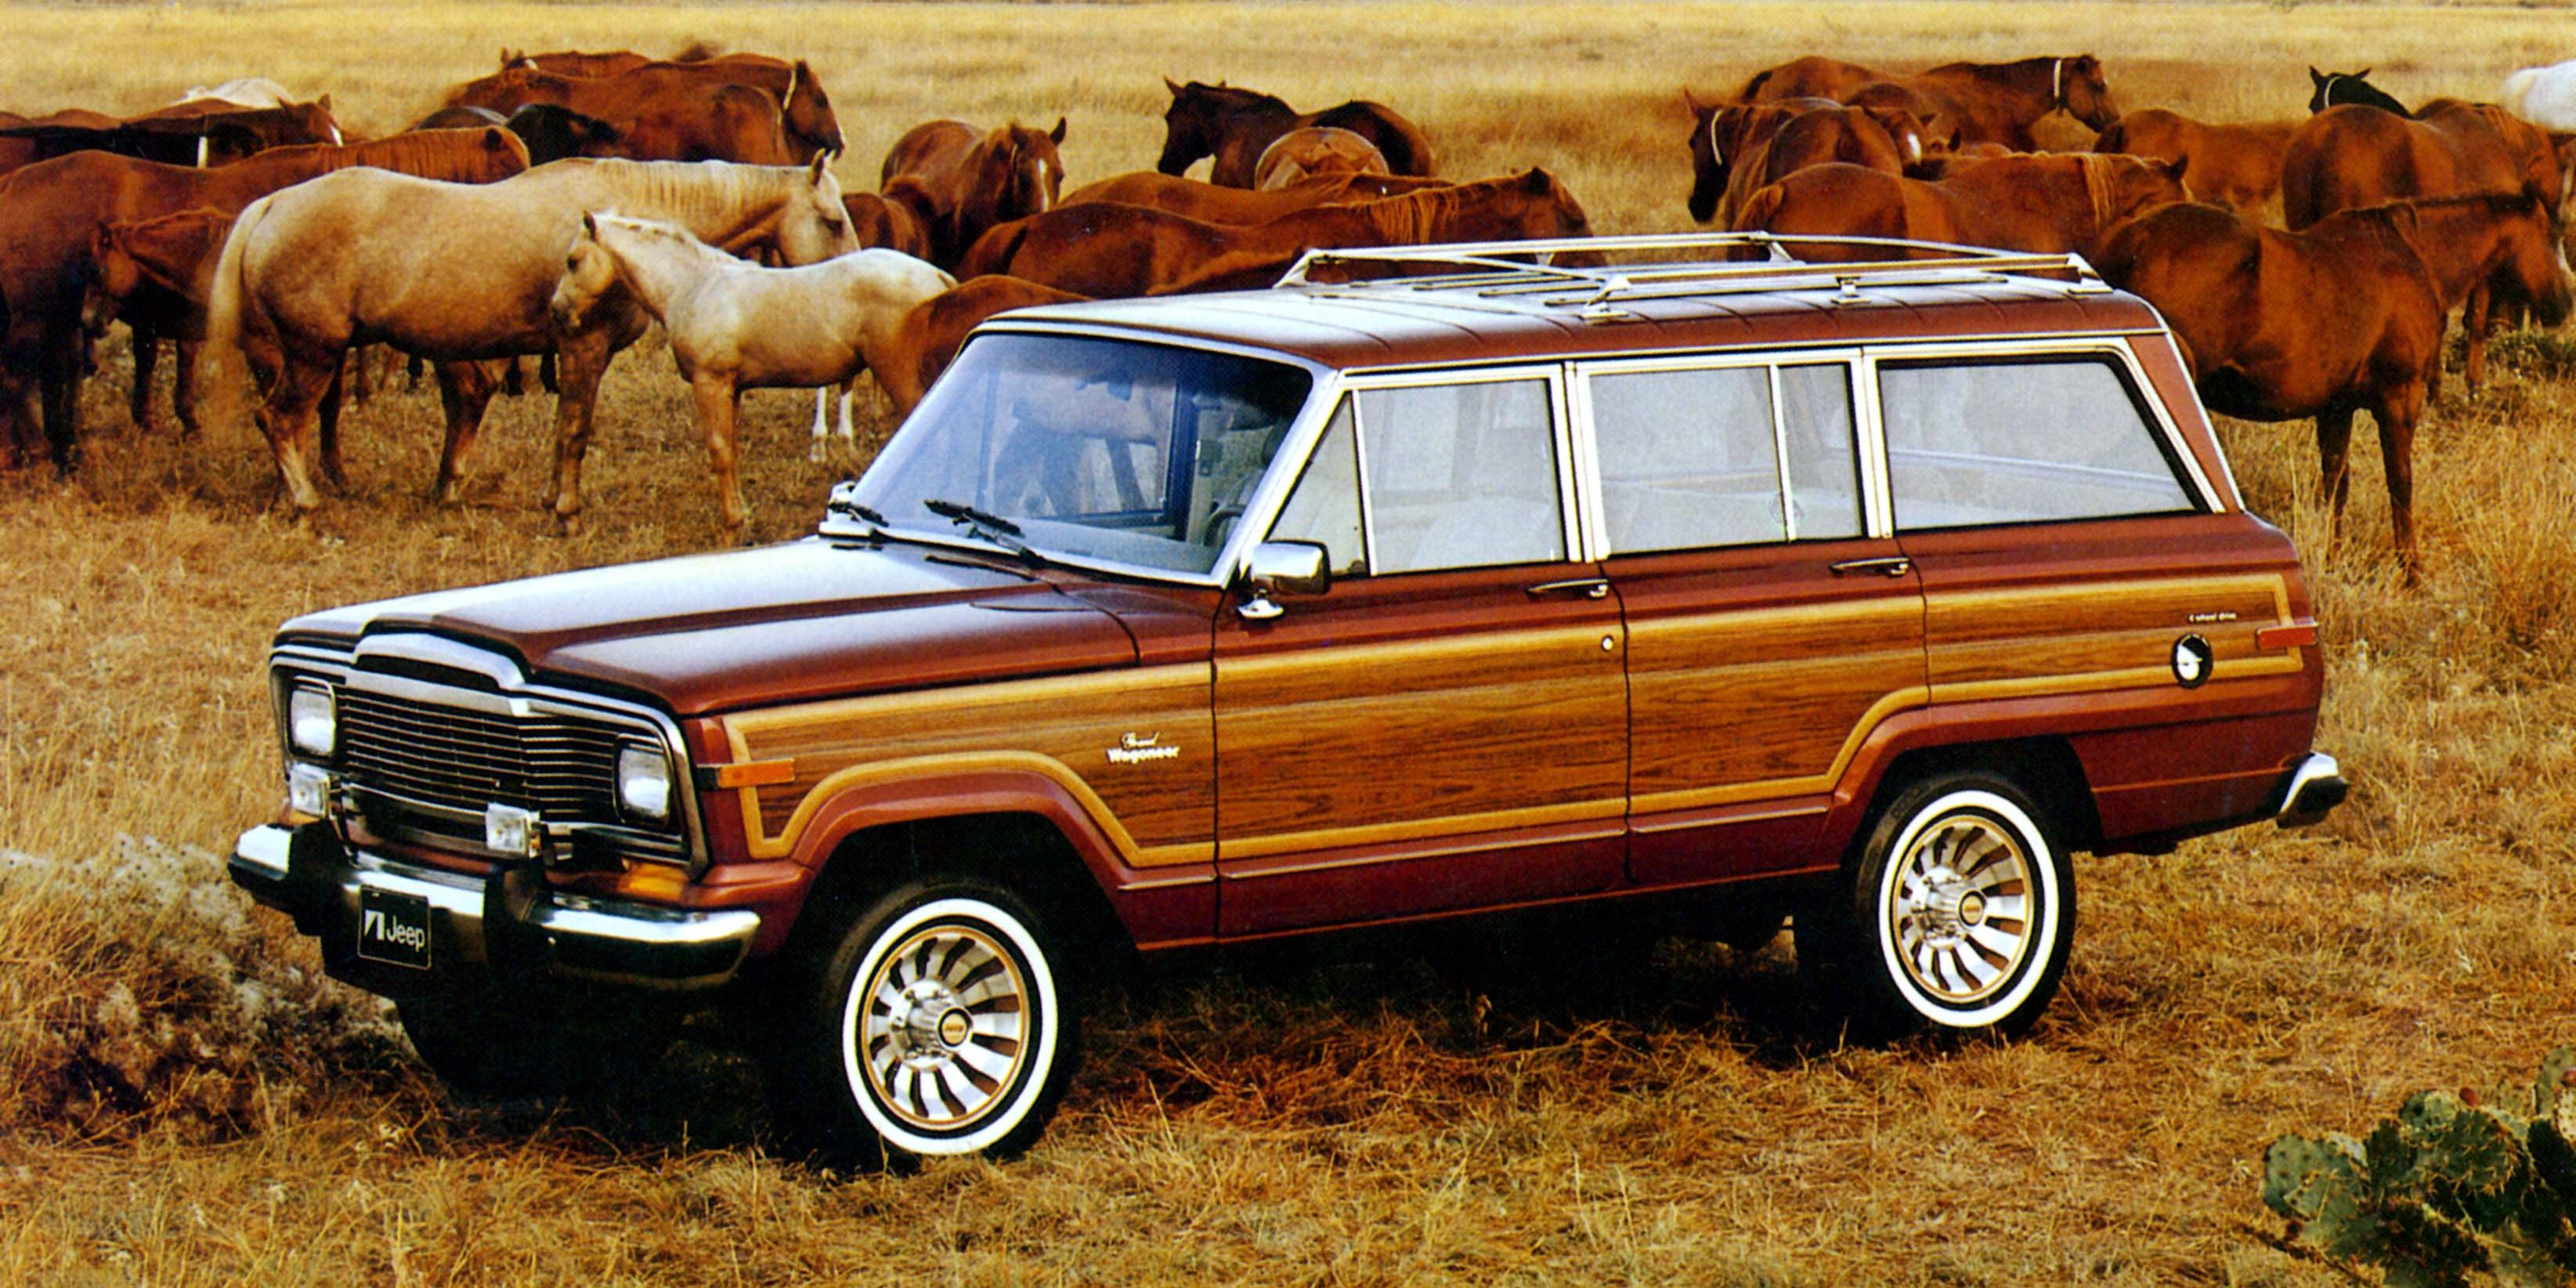 Jeep Grand Wagoneer For Sale >> New Jeep Wagoneer Jeep Grand Wagoneer Price